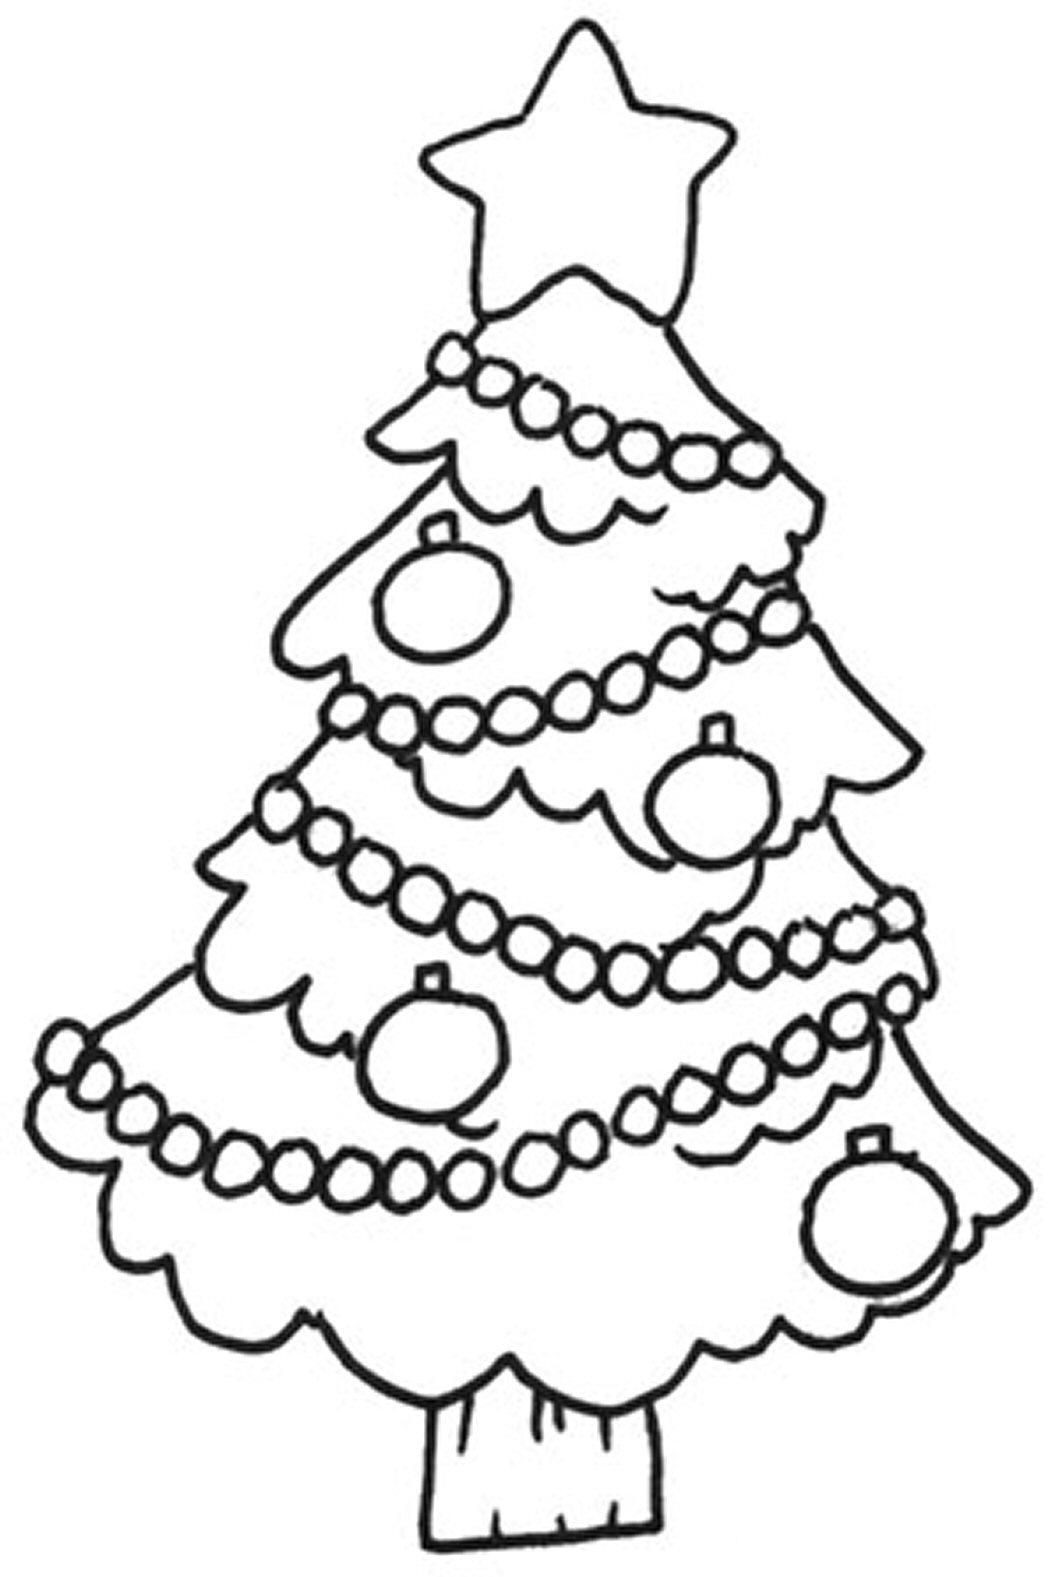 download simple coloring pages 1 print - Simple Coloring Pages To Print